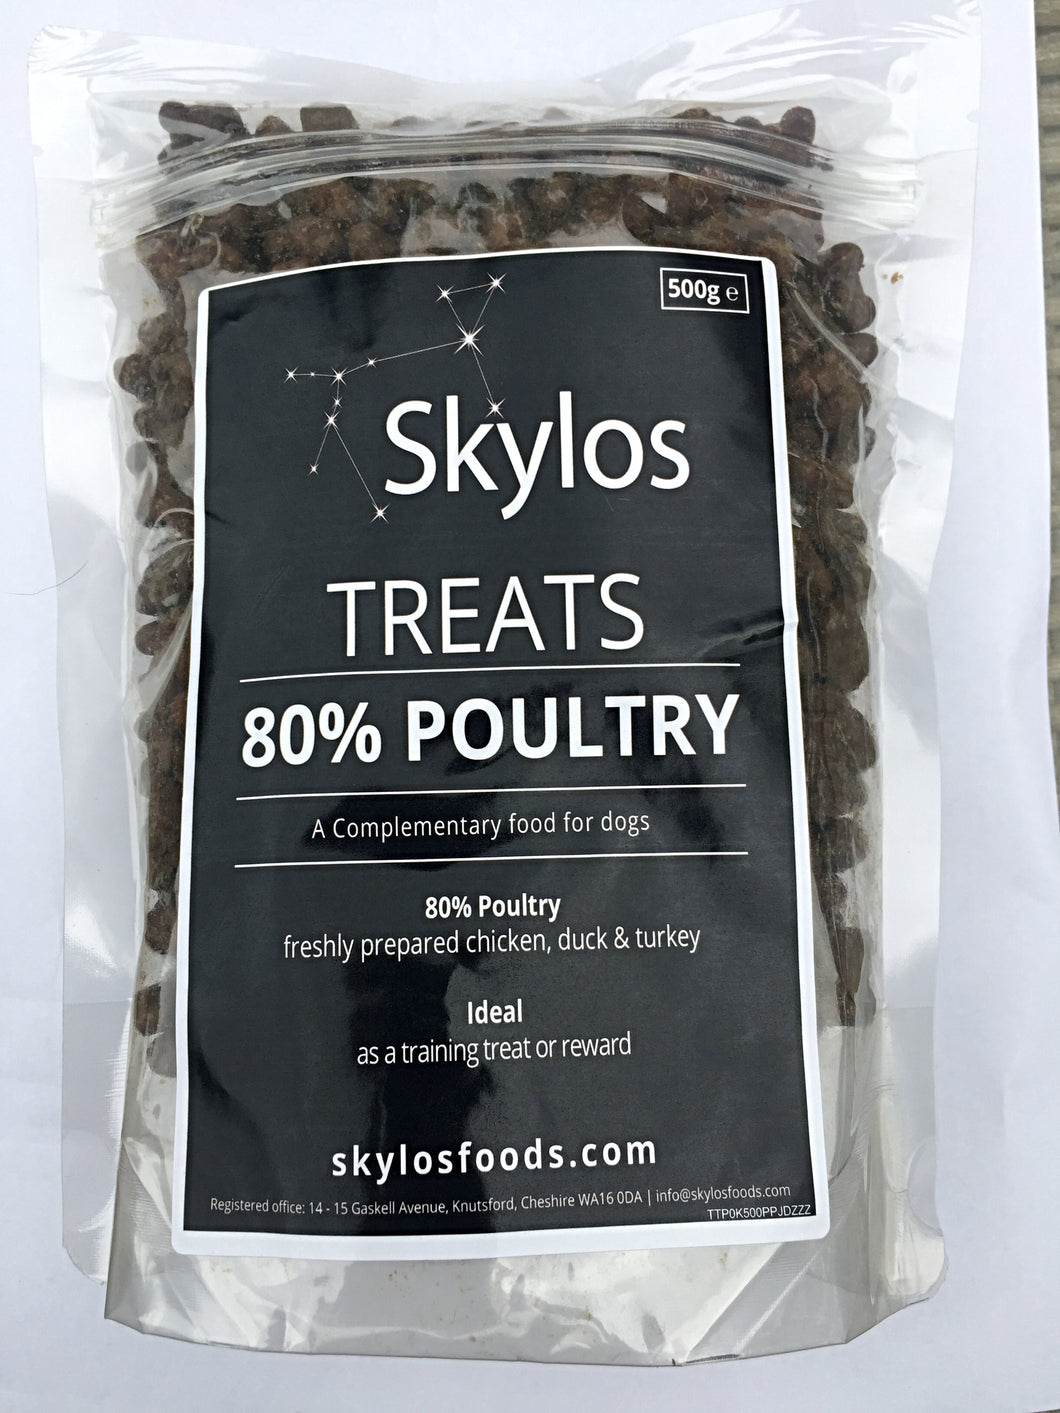 500g Bag - Grain Free 80% Poultry Dog Treats, 500g For The Price Of 400g....